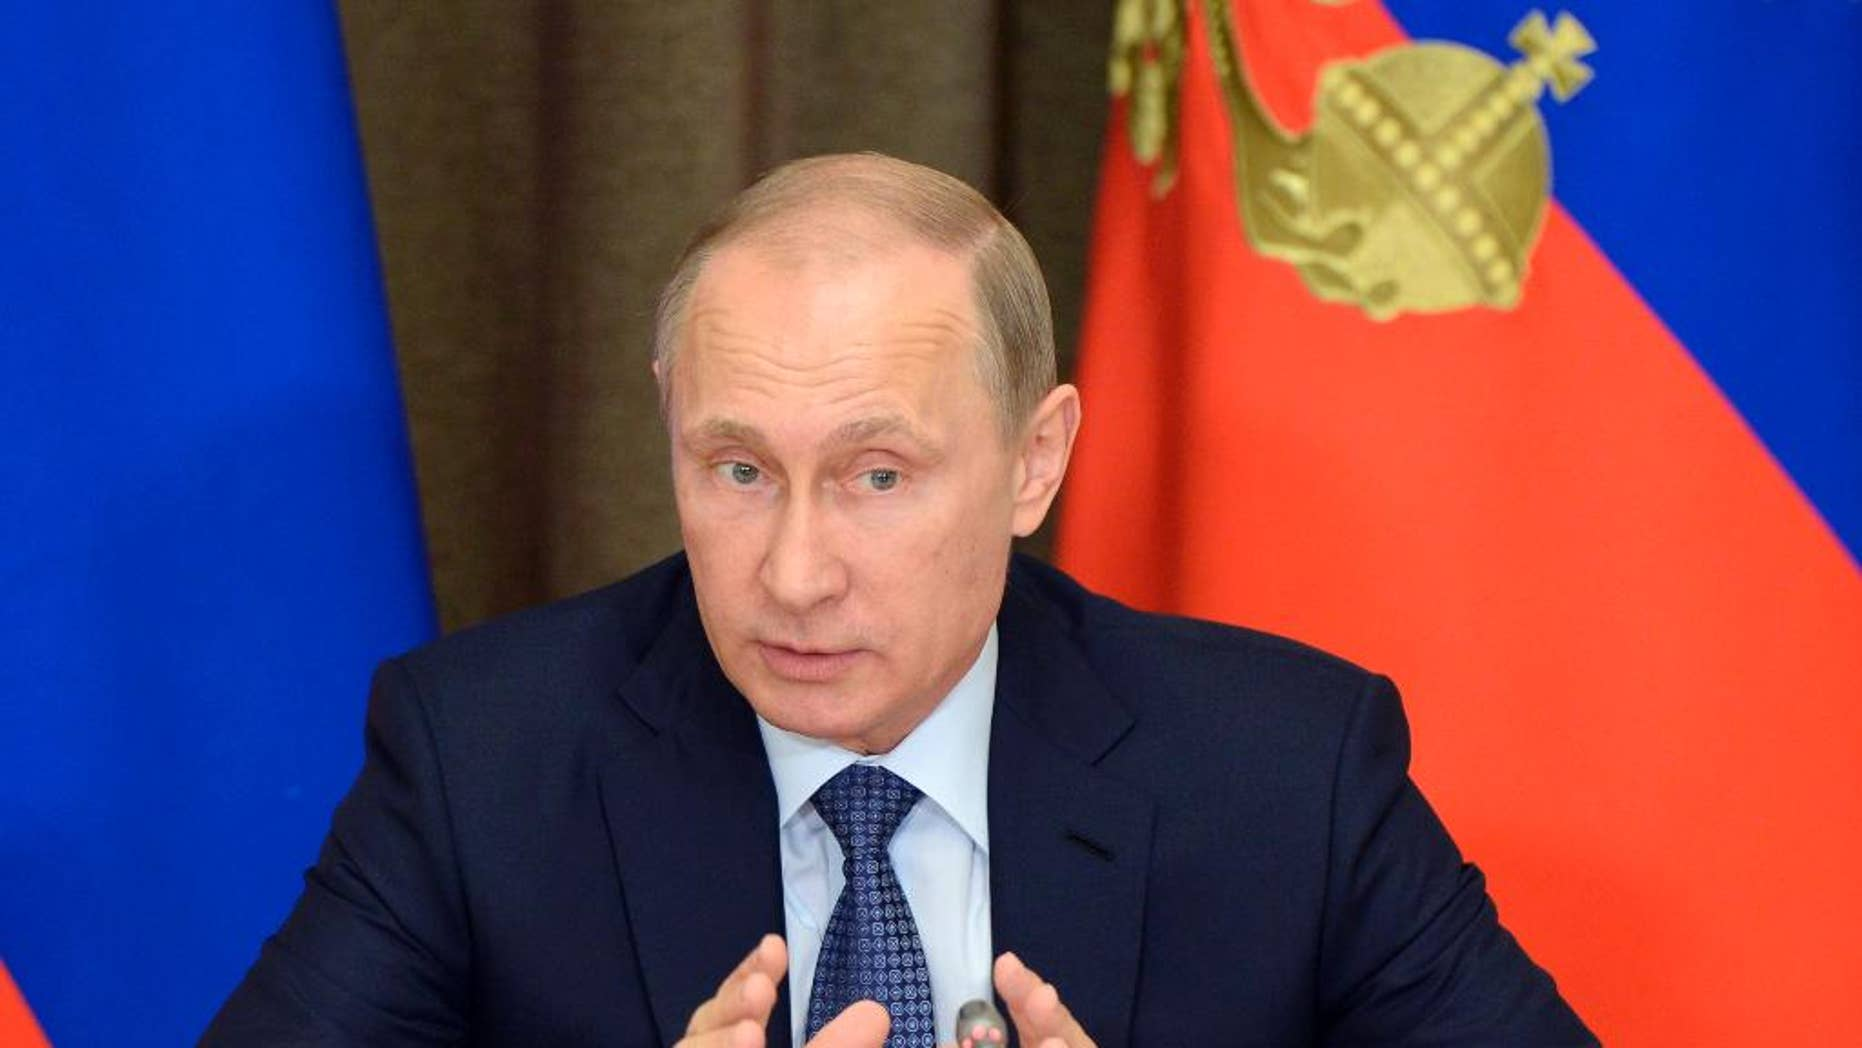 """FILE - In this May 12, 2015 file photo, Russian President Vladimir Putin speaks at a meeting with representatives of top military brass and defense industries at the Bocharov Ruchei residence in the Black Sea resort of Sochi, Russia. Putin signed a bill into law Saturday, May 23, 2015, giving prosecutors the power to declare foreign and international organizations """"undesirable"""" in Russia and shut them down. (Alexei Nikolsky/RIA-Novosti, Kremlin Pool Photo via AP, File)"""